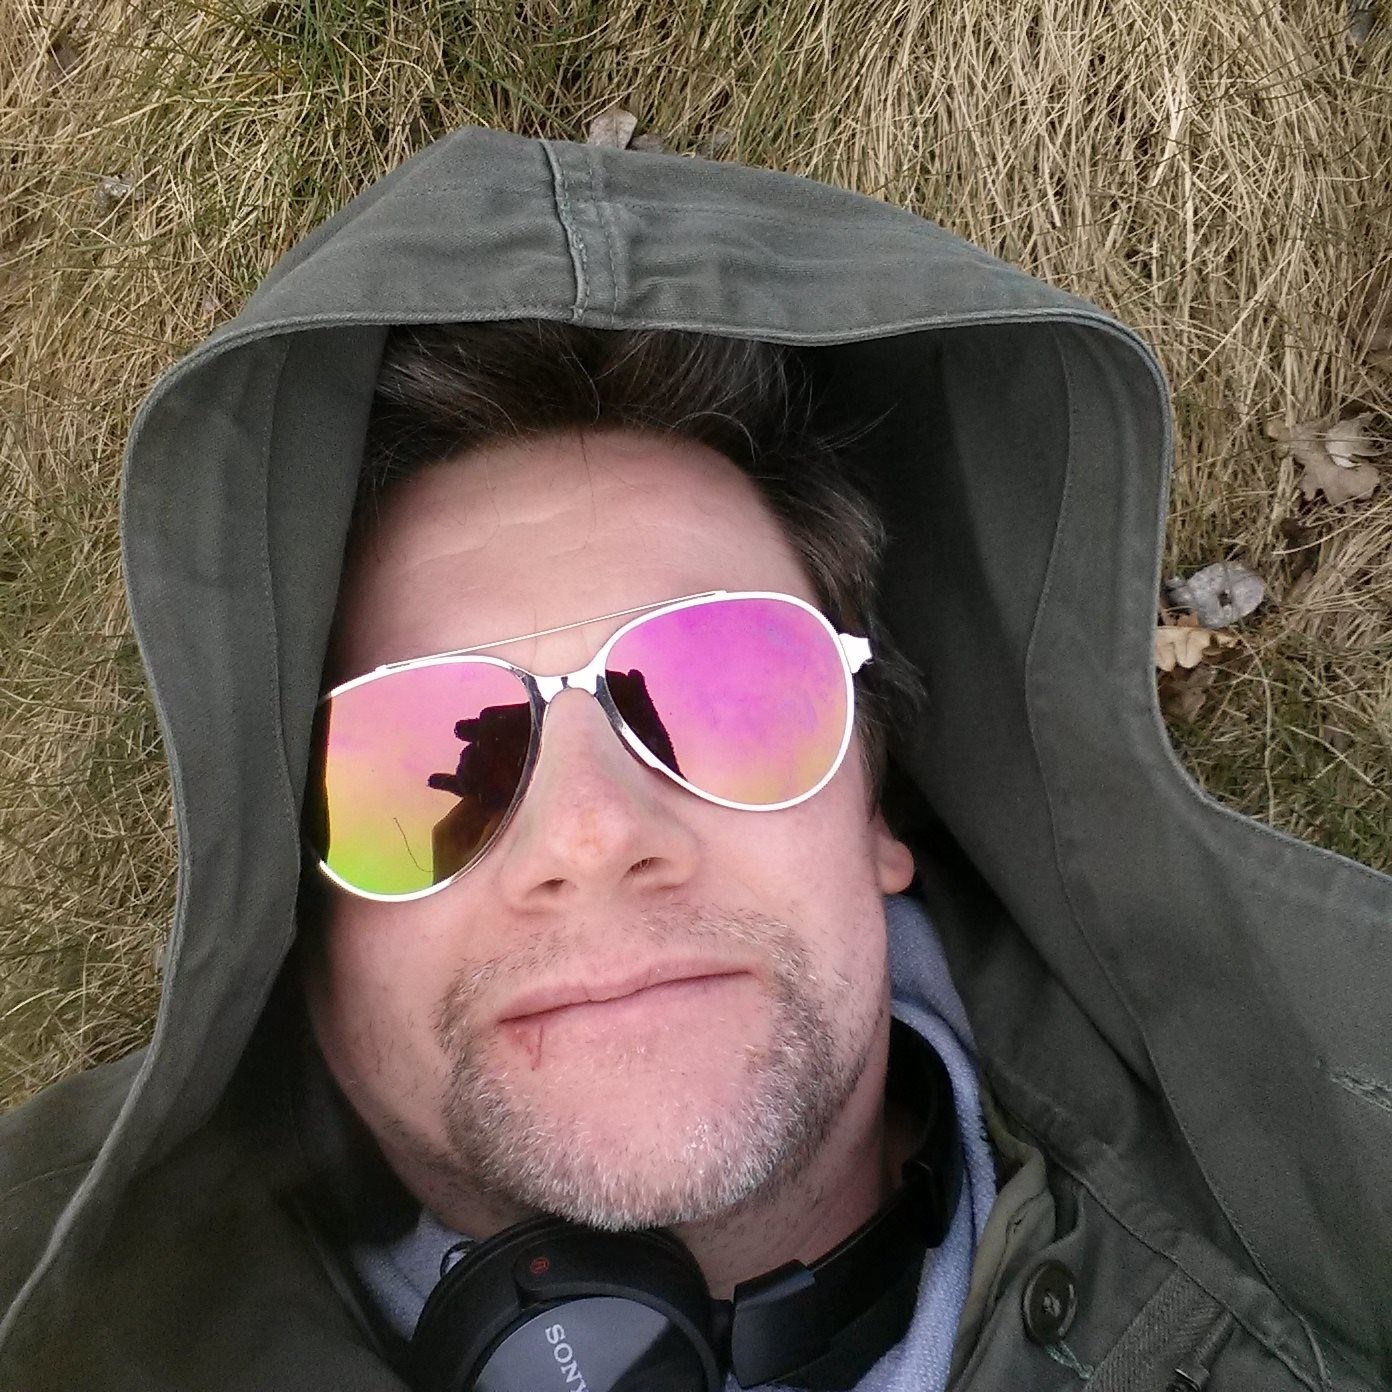 Anth loved to ride out on his bike, find a sunny spot and snooze in the fresh air.